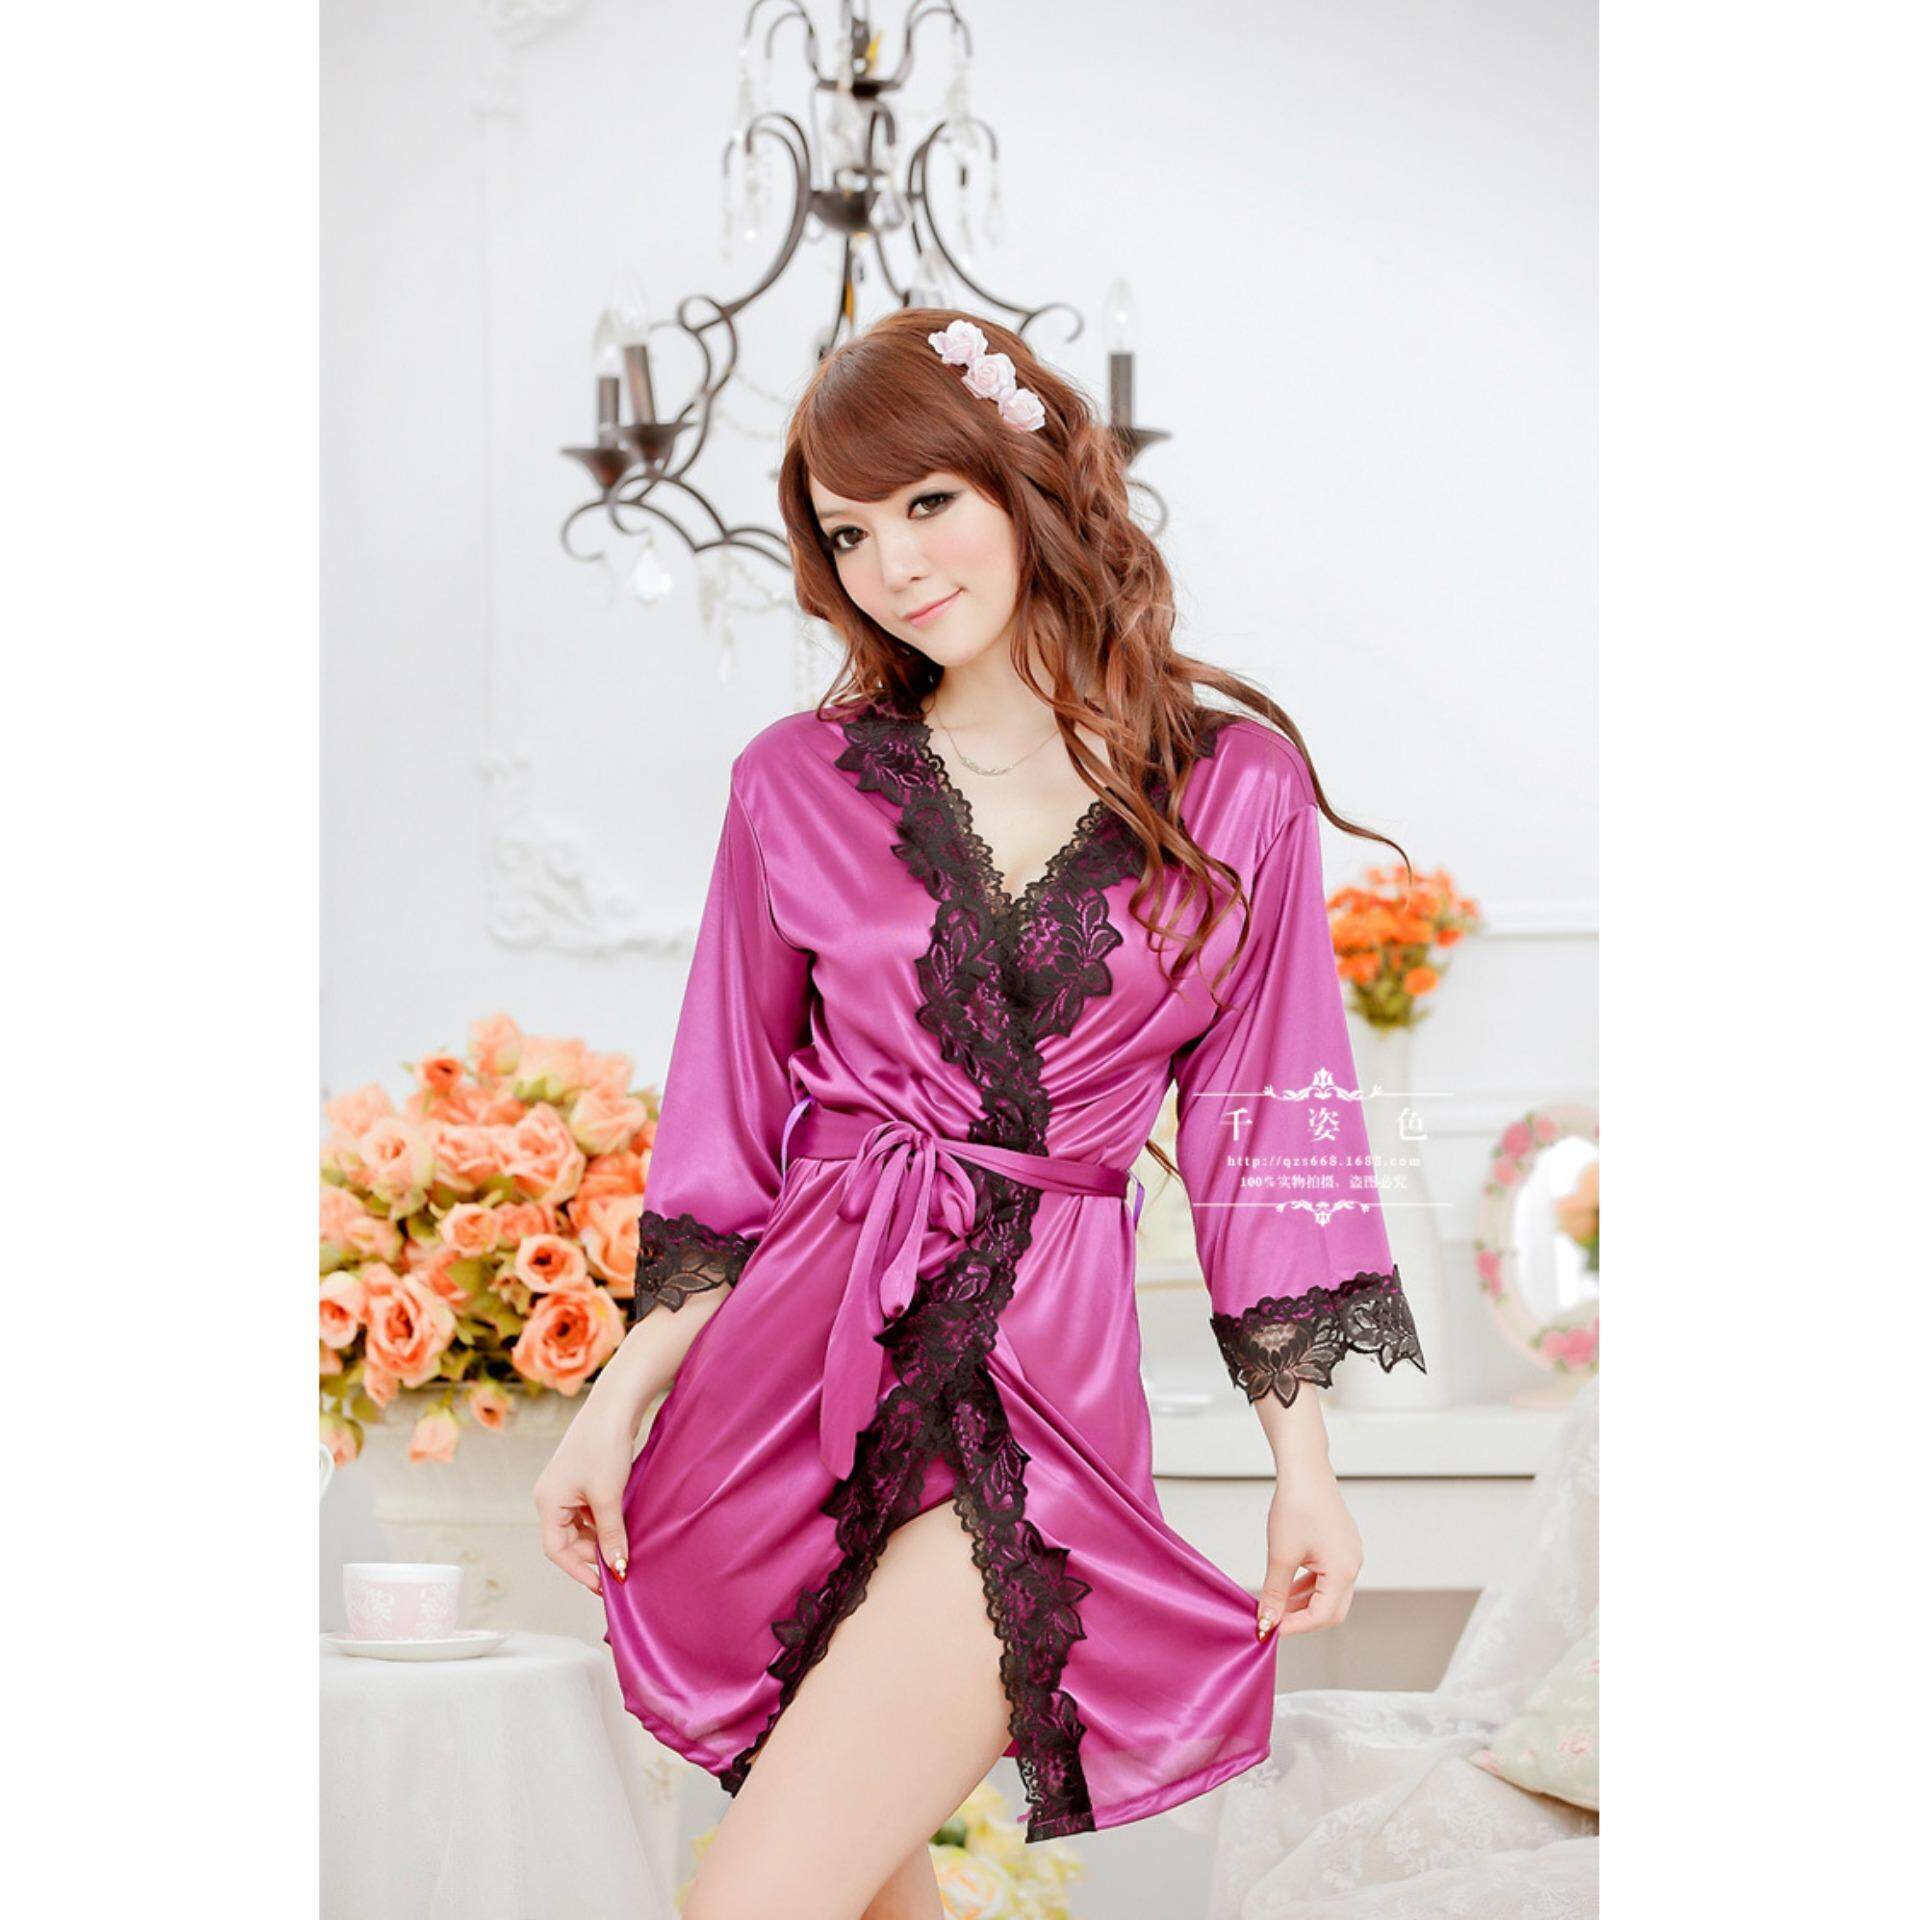 fc6849192 Bolster Store Women Ladies Japanese Silk Lace Robe Sexy Lingerie ...